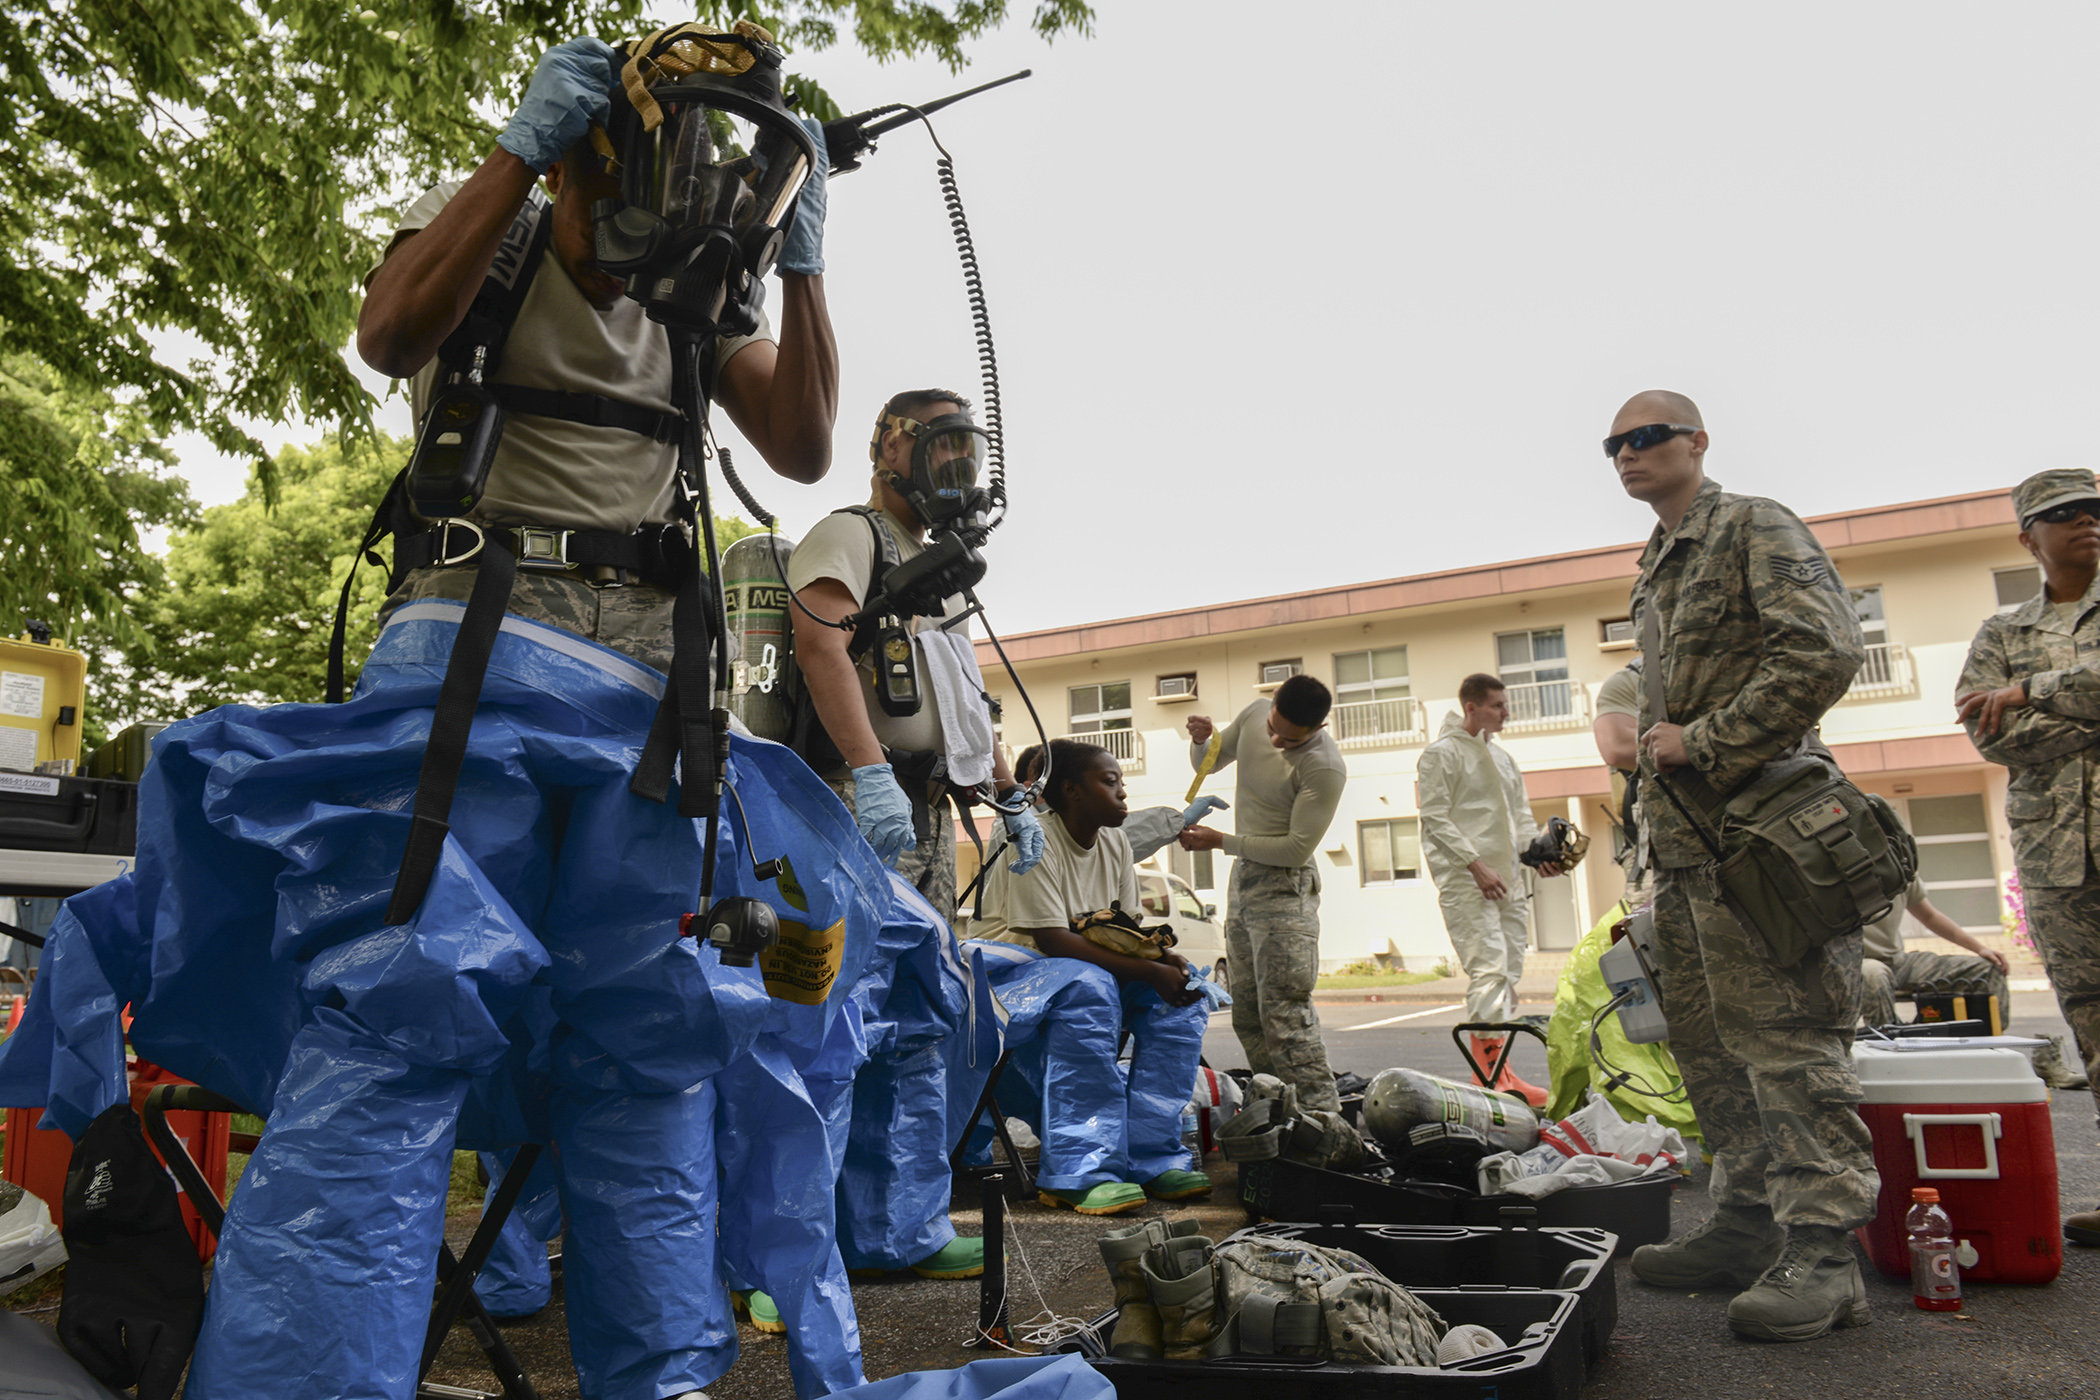 Airmen from the 374th Civil Engineer Squadron and the 374th Aerospace Medicine Squadron suit up to respond to a mock chemical threat, May 6, 2015, at Yokota Air Base, Japan. The chemical threat was part of an environmental hazard exercise performed to keep emergency responders adept on responding to life-threatening events. (U.S. Air Force photo by Airman 1st Class Elizabeth Baker/Released)